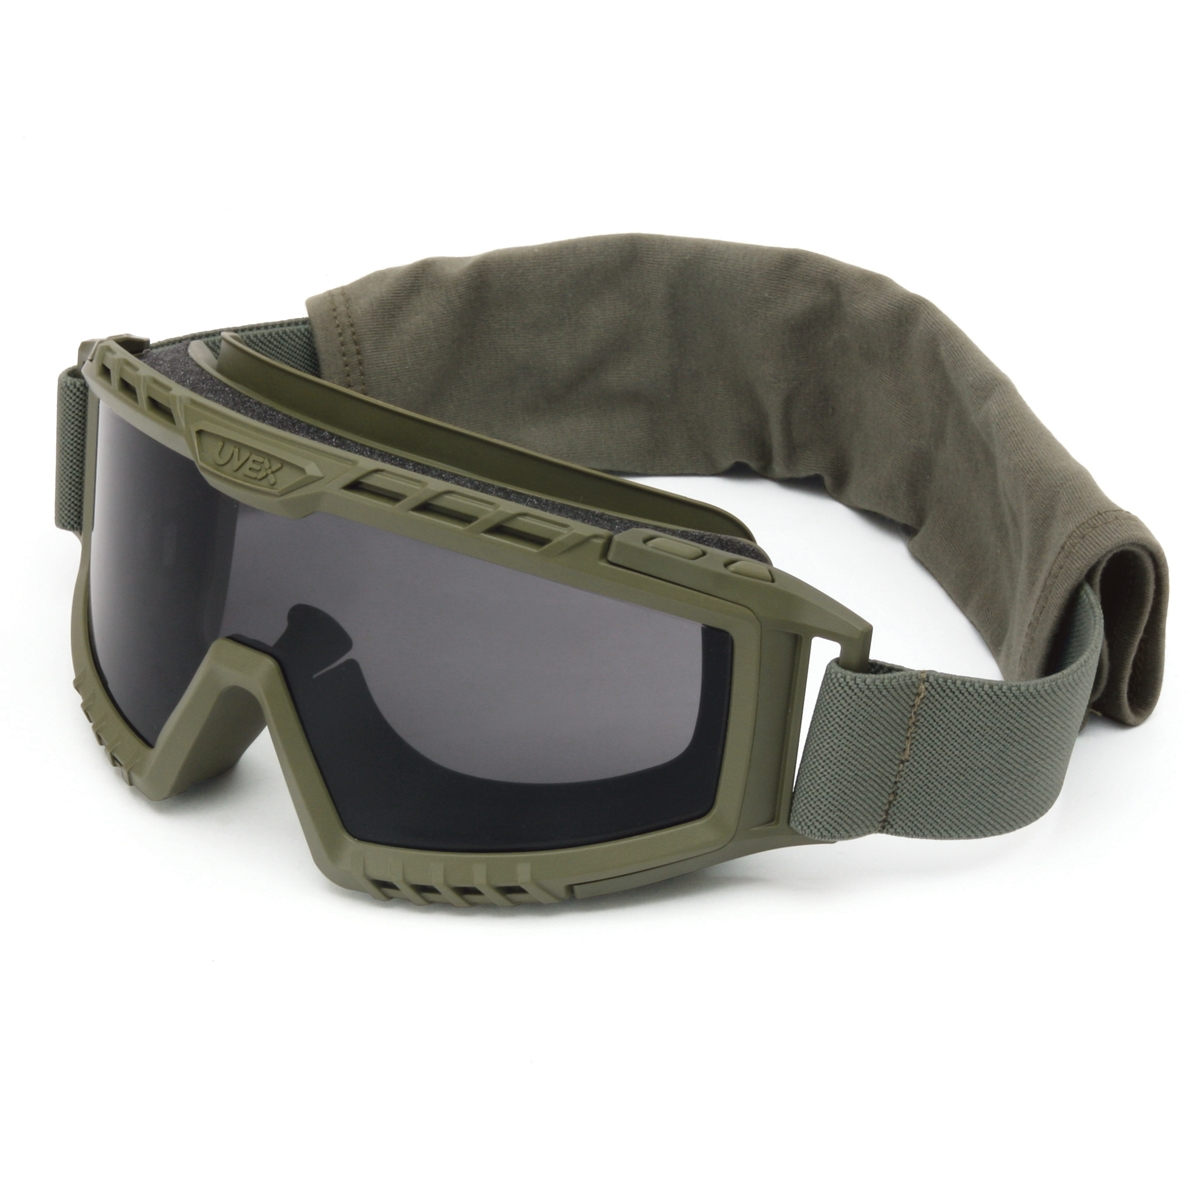 Uvex Xmf Tactical Goggles Foliage Green Frame Gray